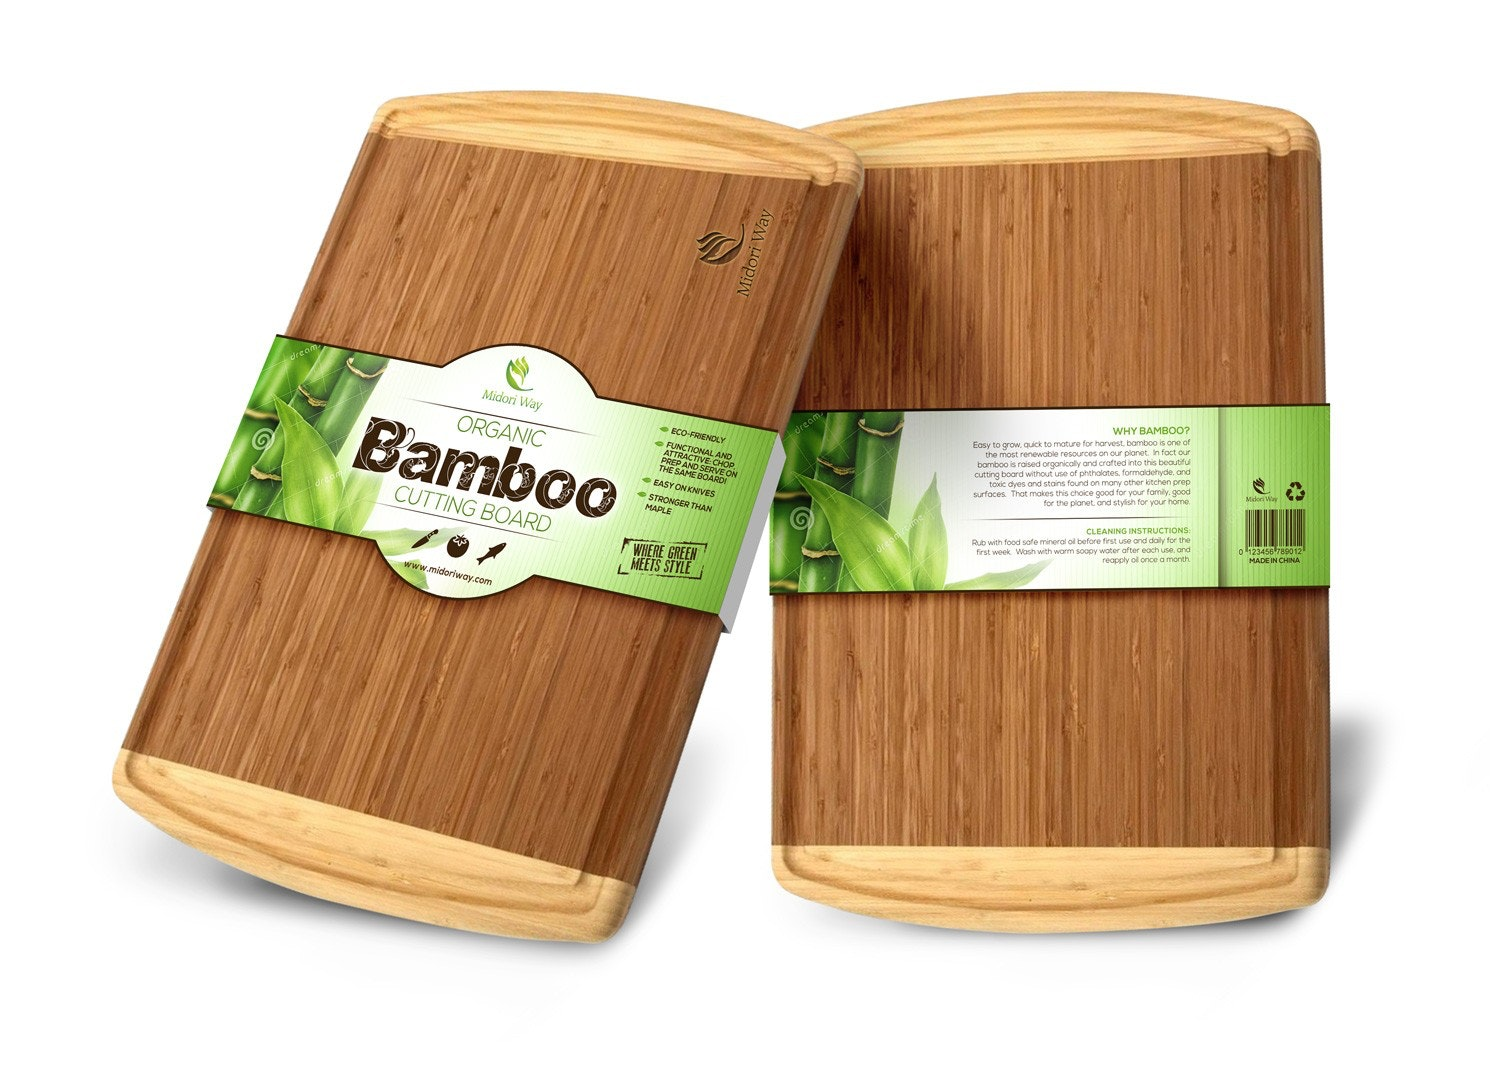 Bamboo cutting board sleeve